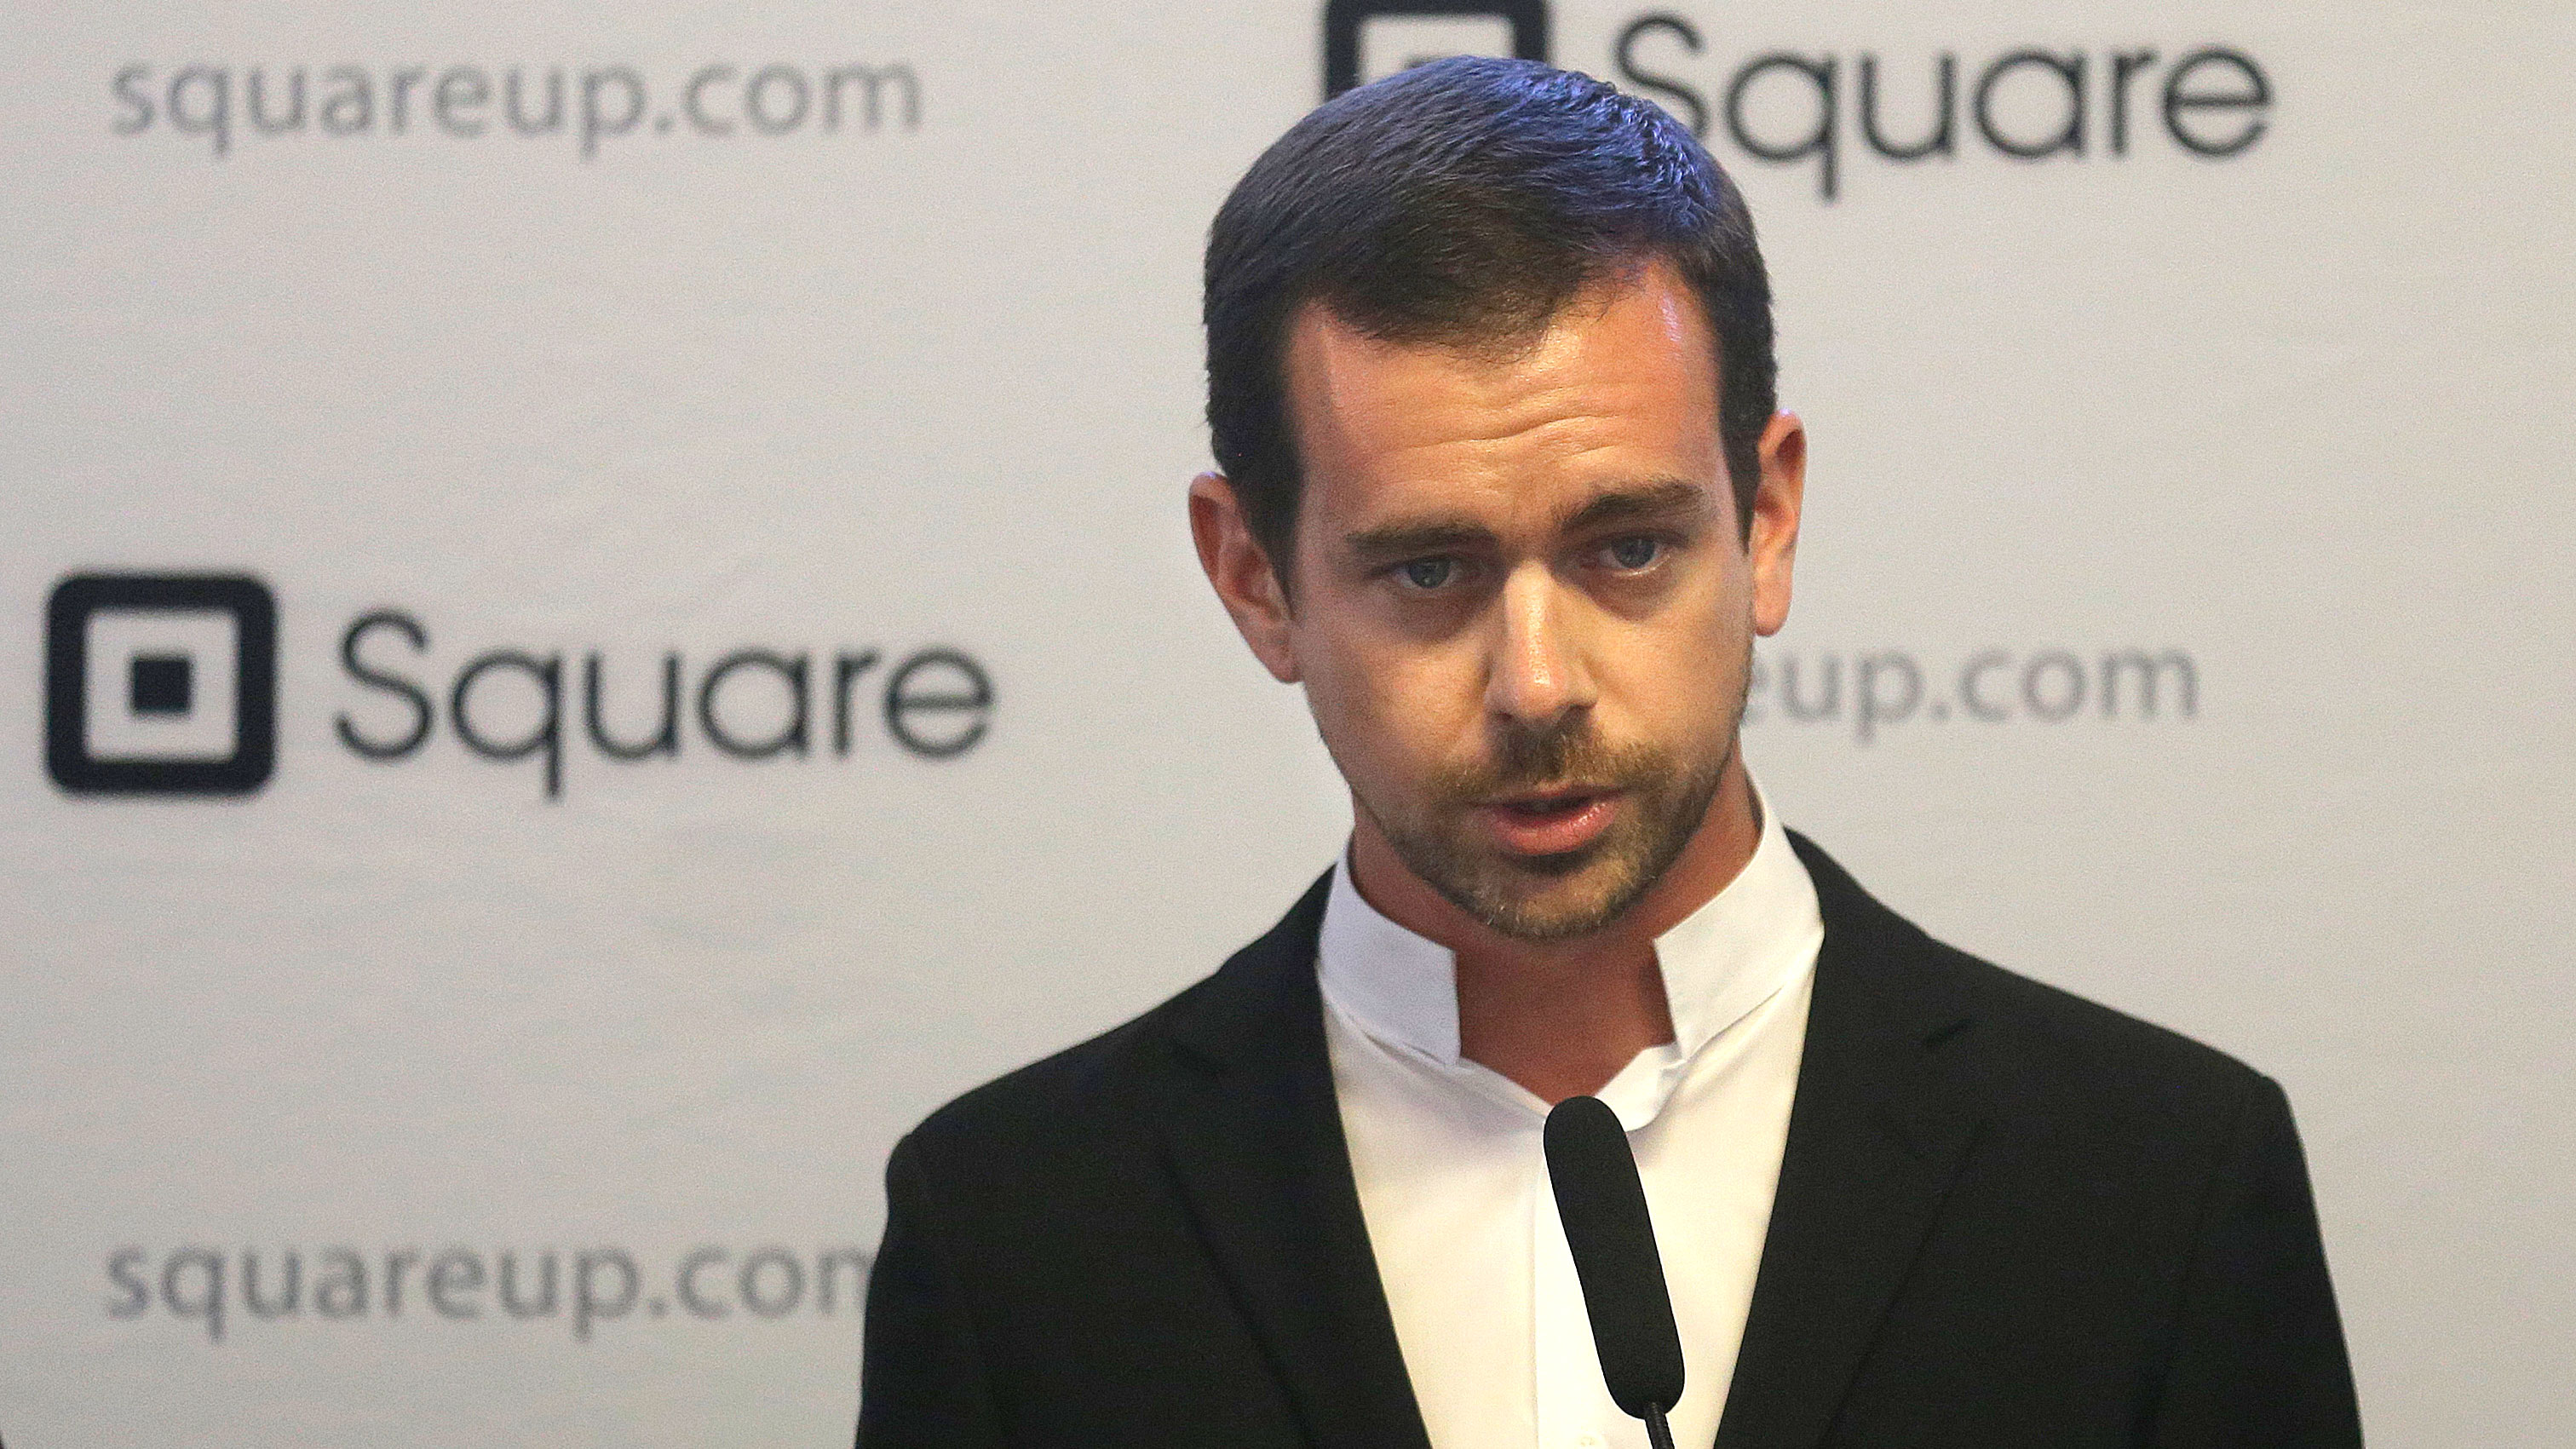 "Square CEO Jack Dorsey speaks at a news conference in San Francisco, Friday, June 14, 2013. New York Mayor Michael Bloomberg and San Francisco Mayor Ed Lee announced they are sponsoring a pair of technology summits to be held in each of their cities in the next year. The mayors said the ""digital cities"" summits _ one in New York in September and another in San Francisco early next year _ will seek to find ways to use technology to solve the problems the cities face. (AP Photo/Jeff Chiu)"